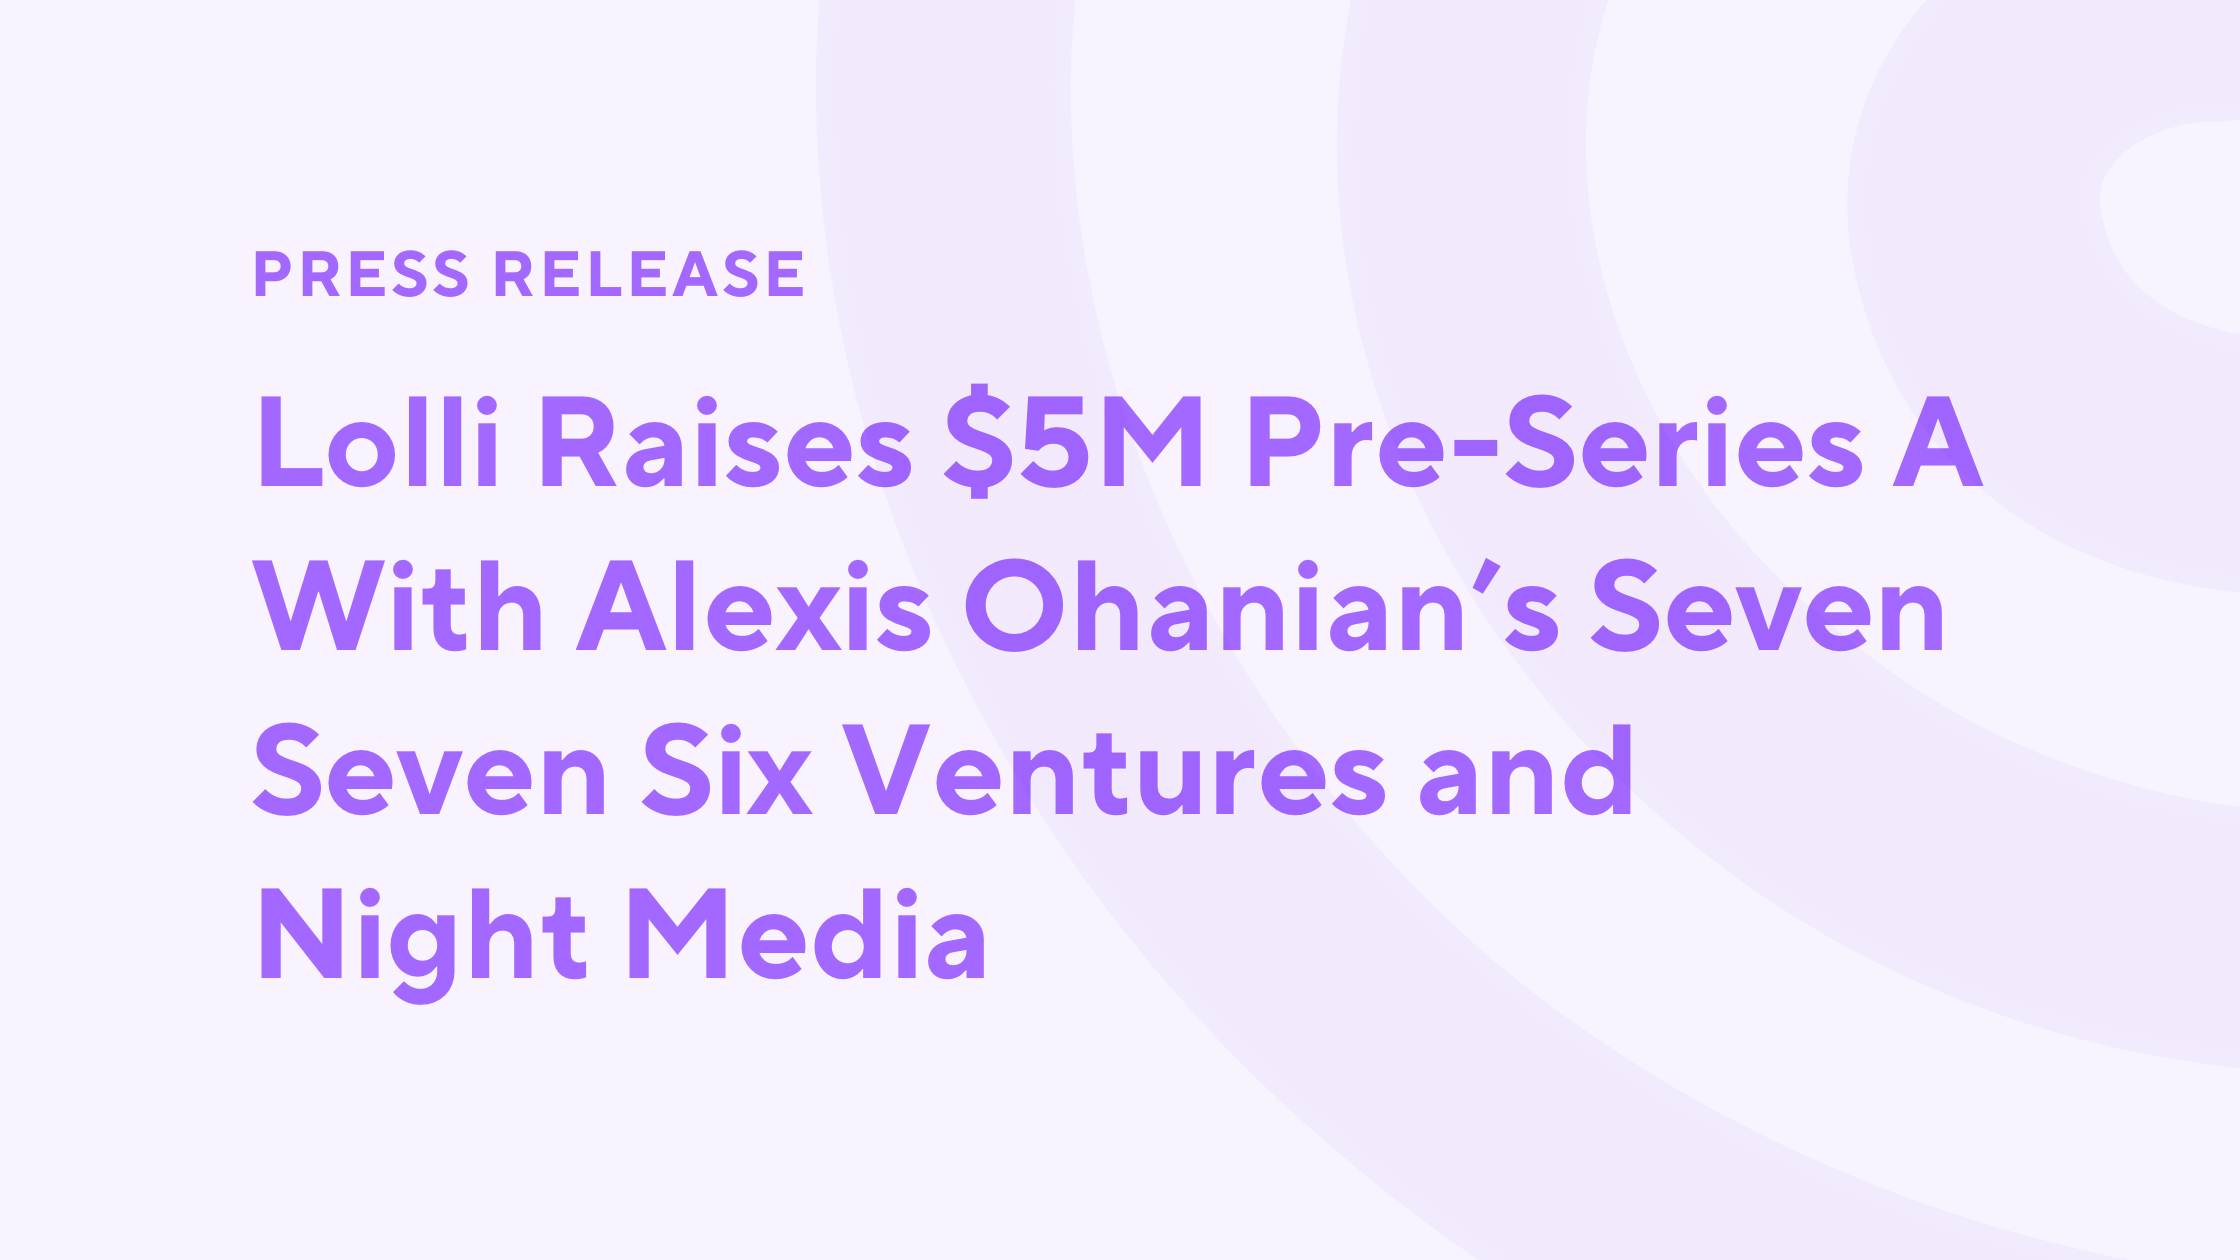 Lolli Raises $5M Pre-Series A With Alexis Ohanian's Seven Seven Six Ventures and Night Media